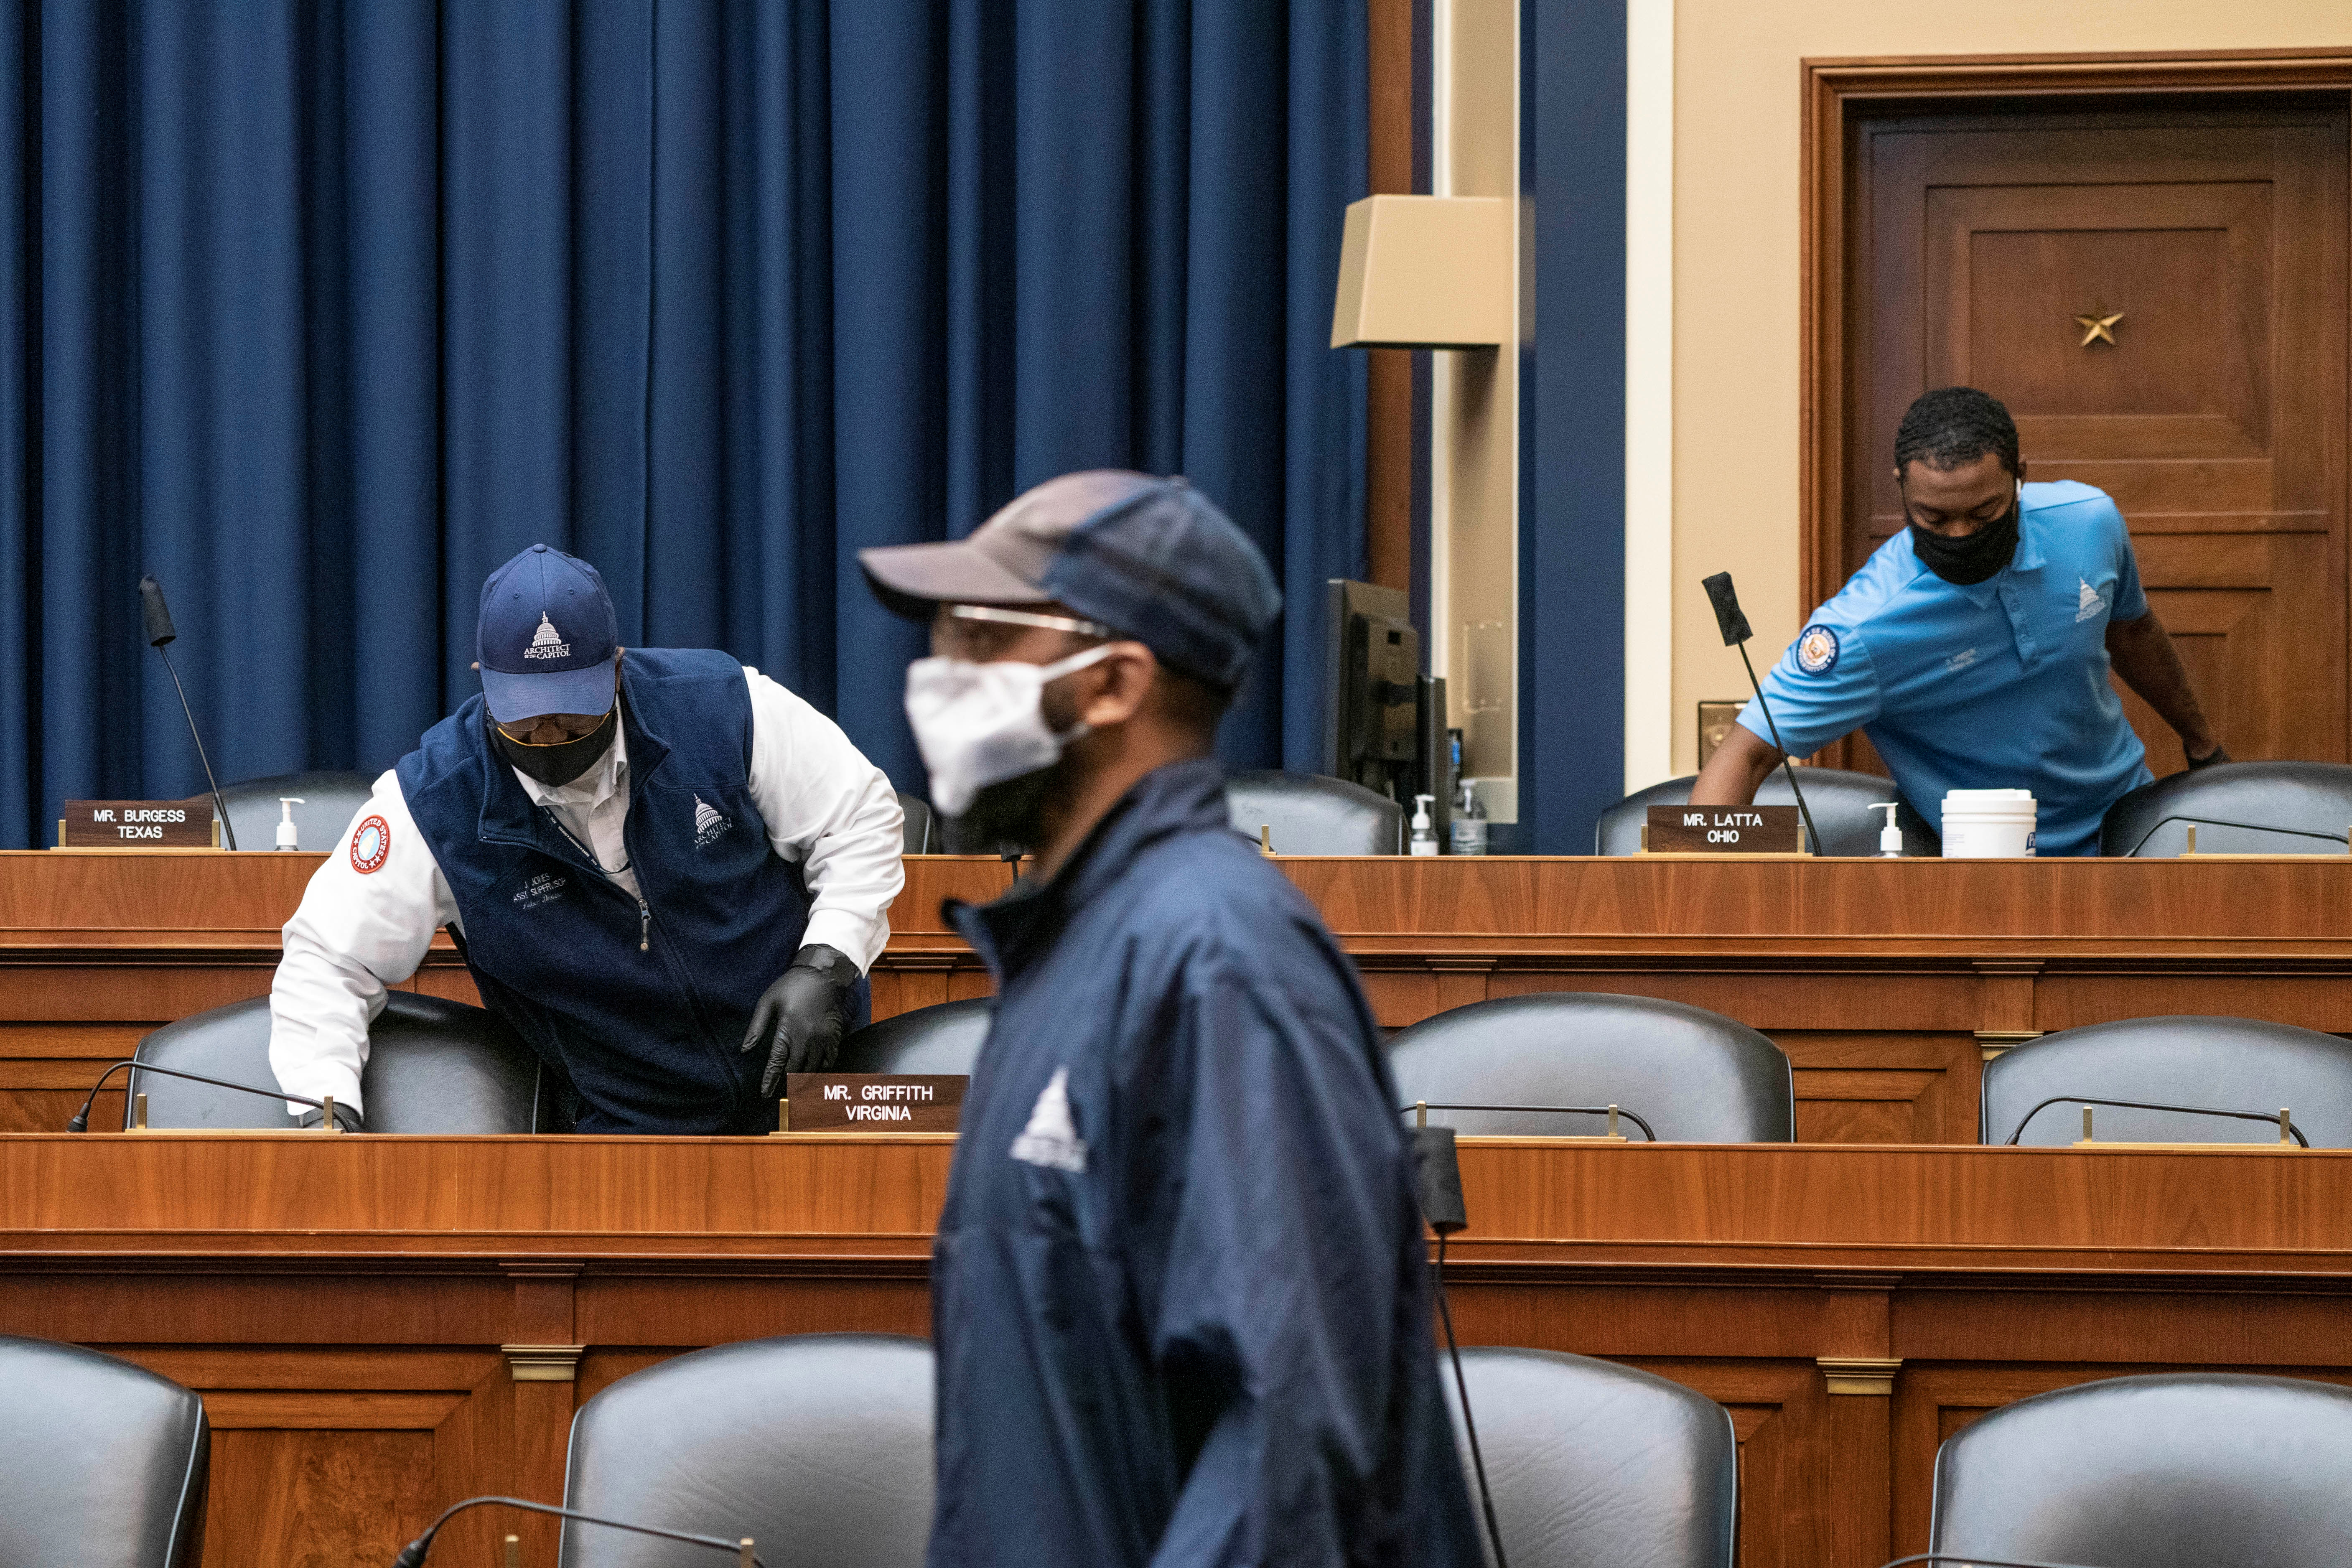 U.S. Capitol maintenance staff disinfect surfaces before the House Energy and Commerce Committee hearing on coronavirus in Washington, DC, U.S. June 23, 2020. Sarah Silbiger/Pool via REUTERS